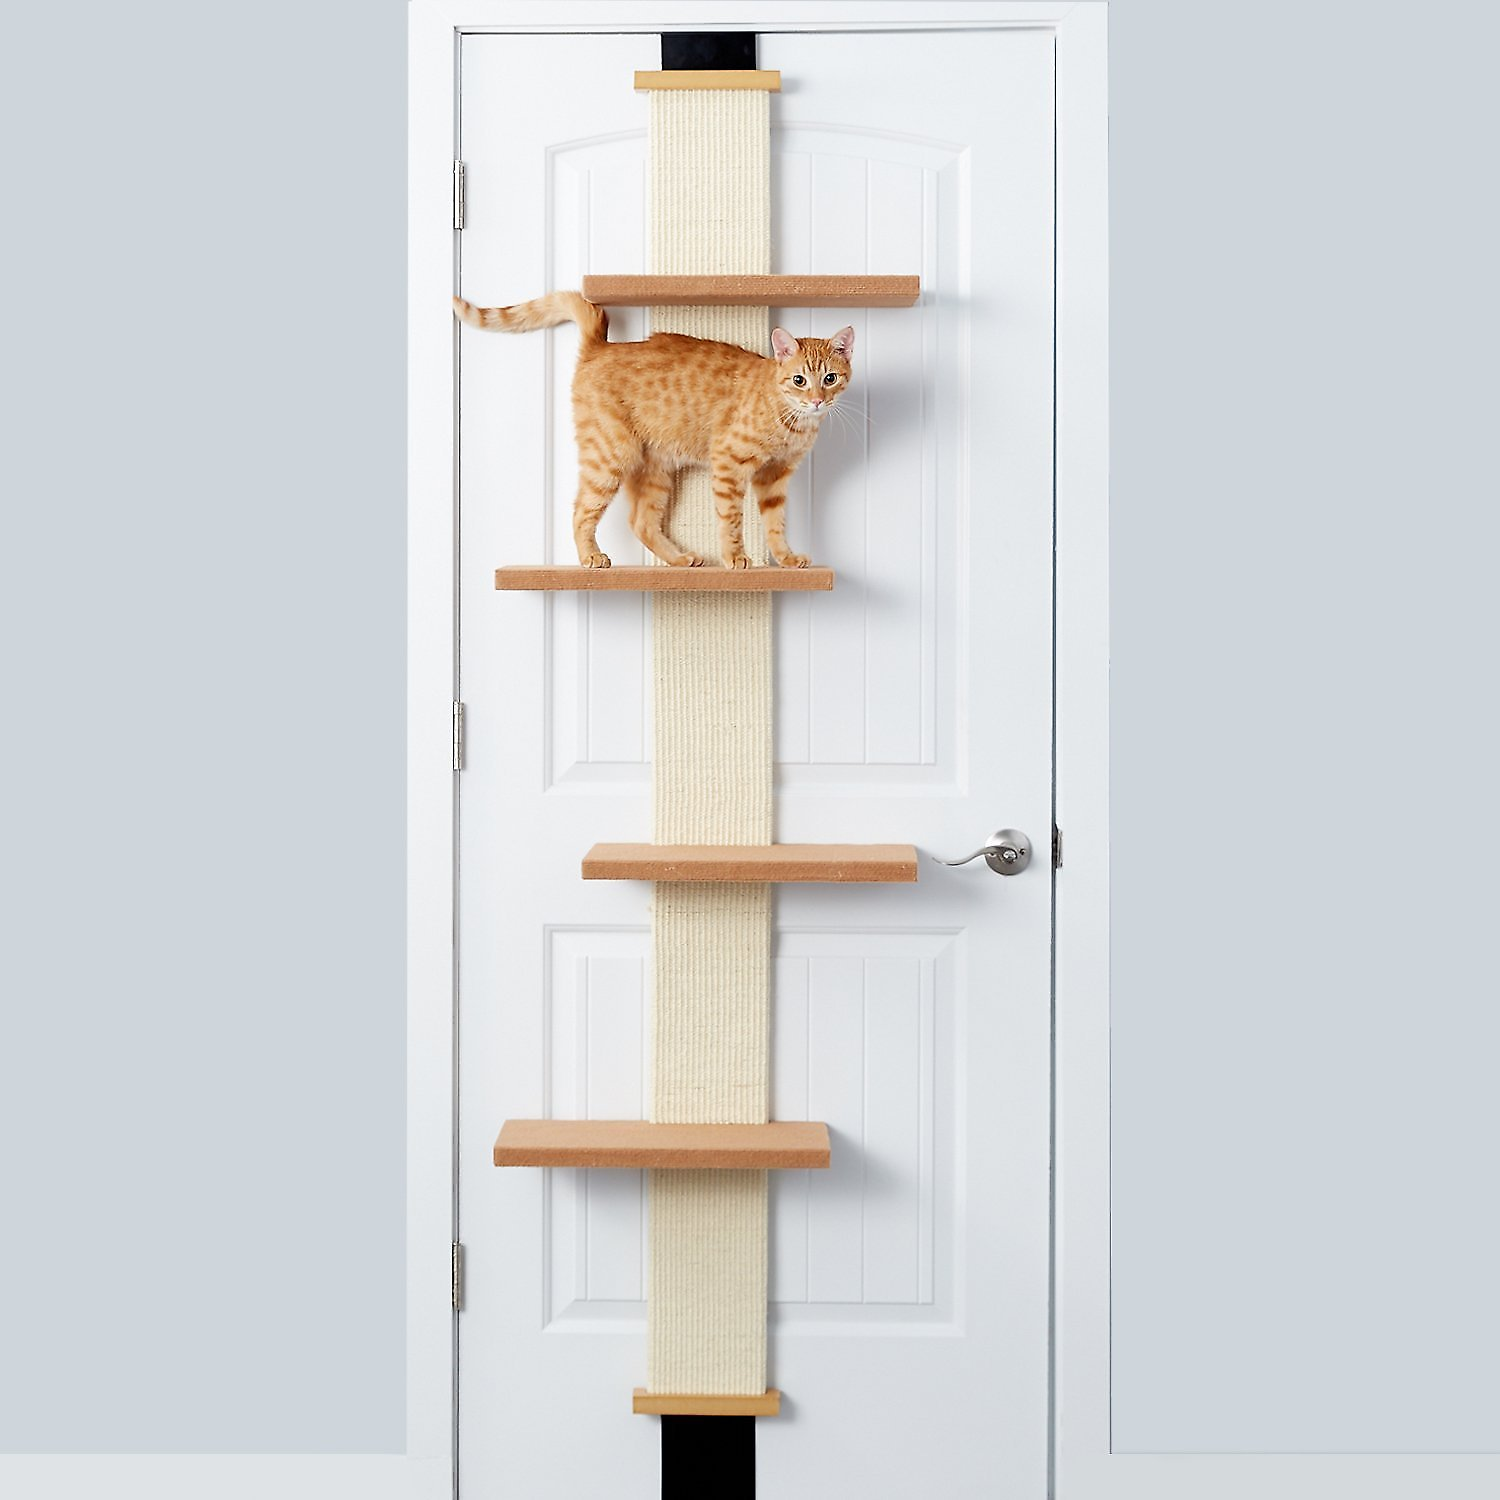 Smartcat Climber Door Mounted Hanging Sisal Cat Tree Free Shipping Chewy